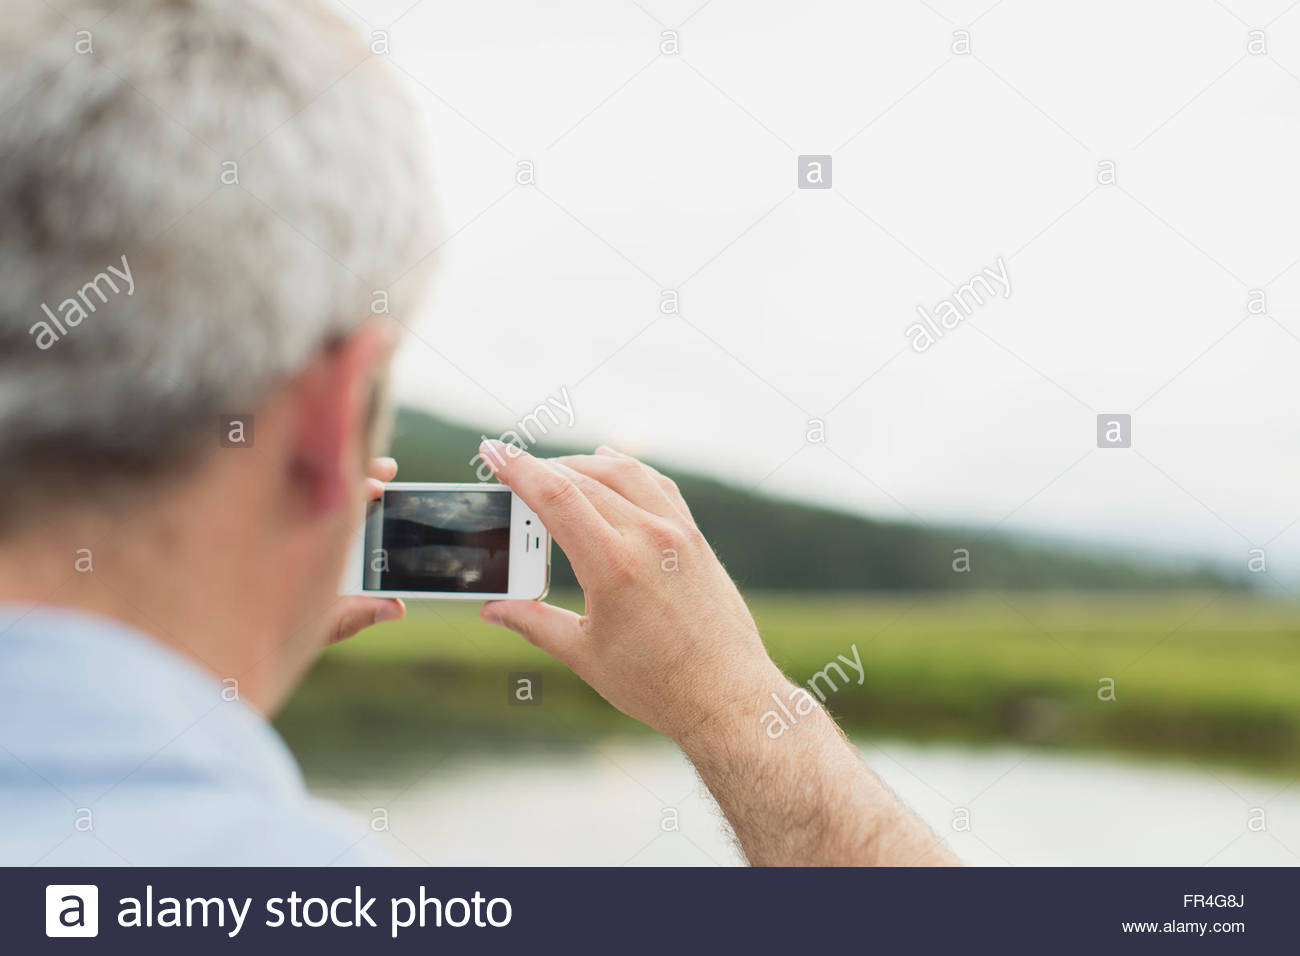 Close-up of man using smartphone to take picture. - Stock Image